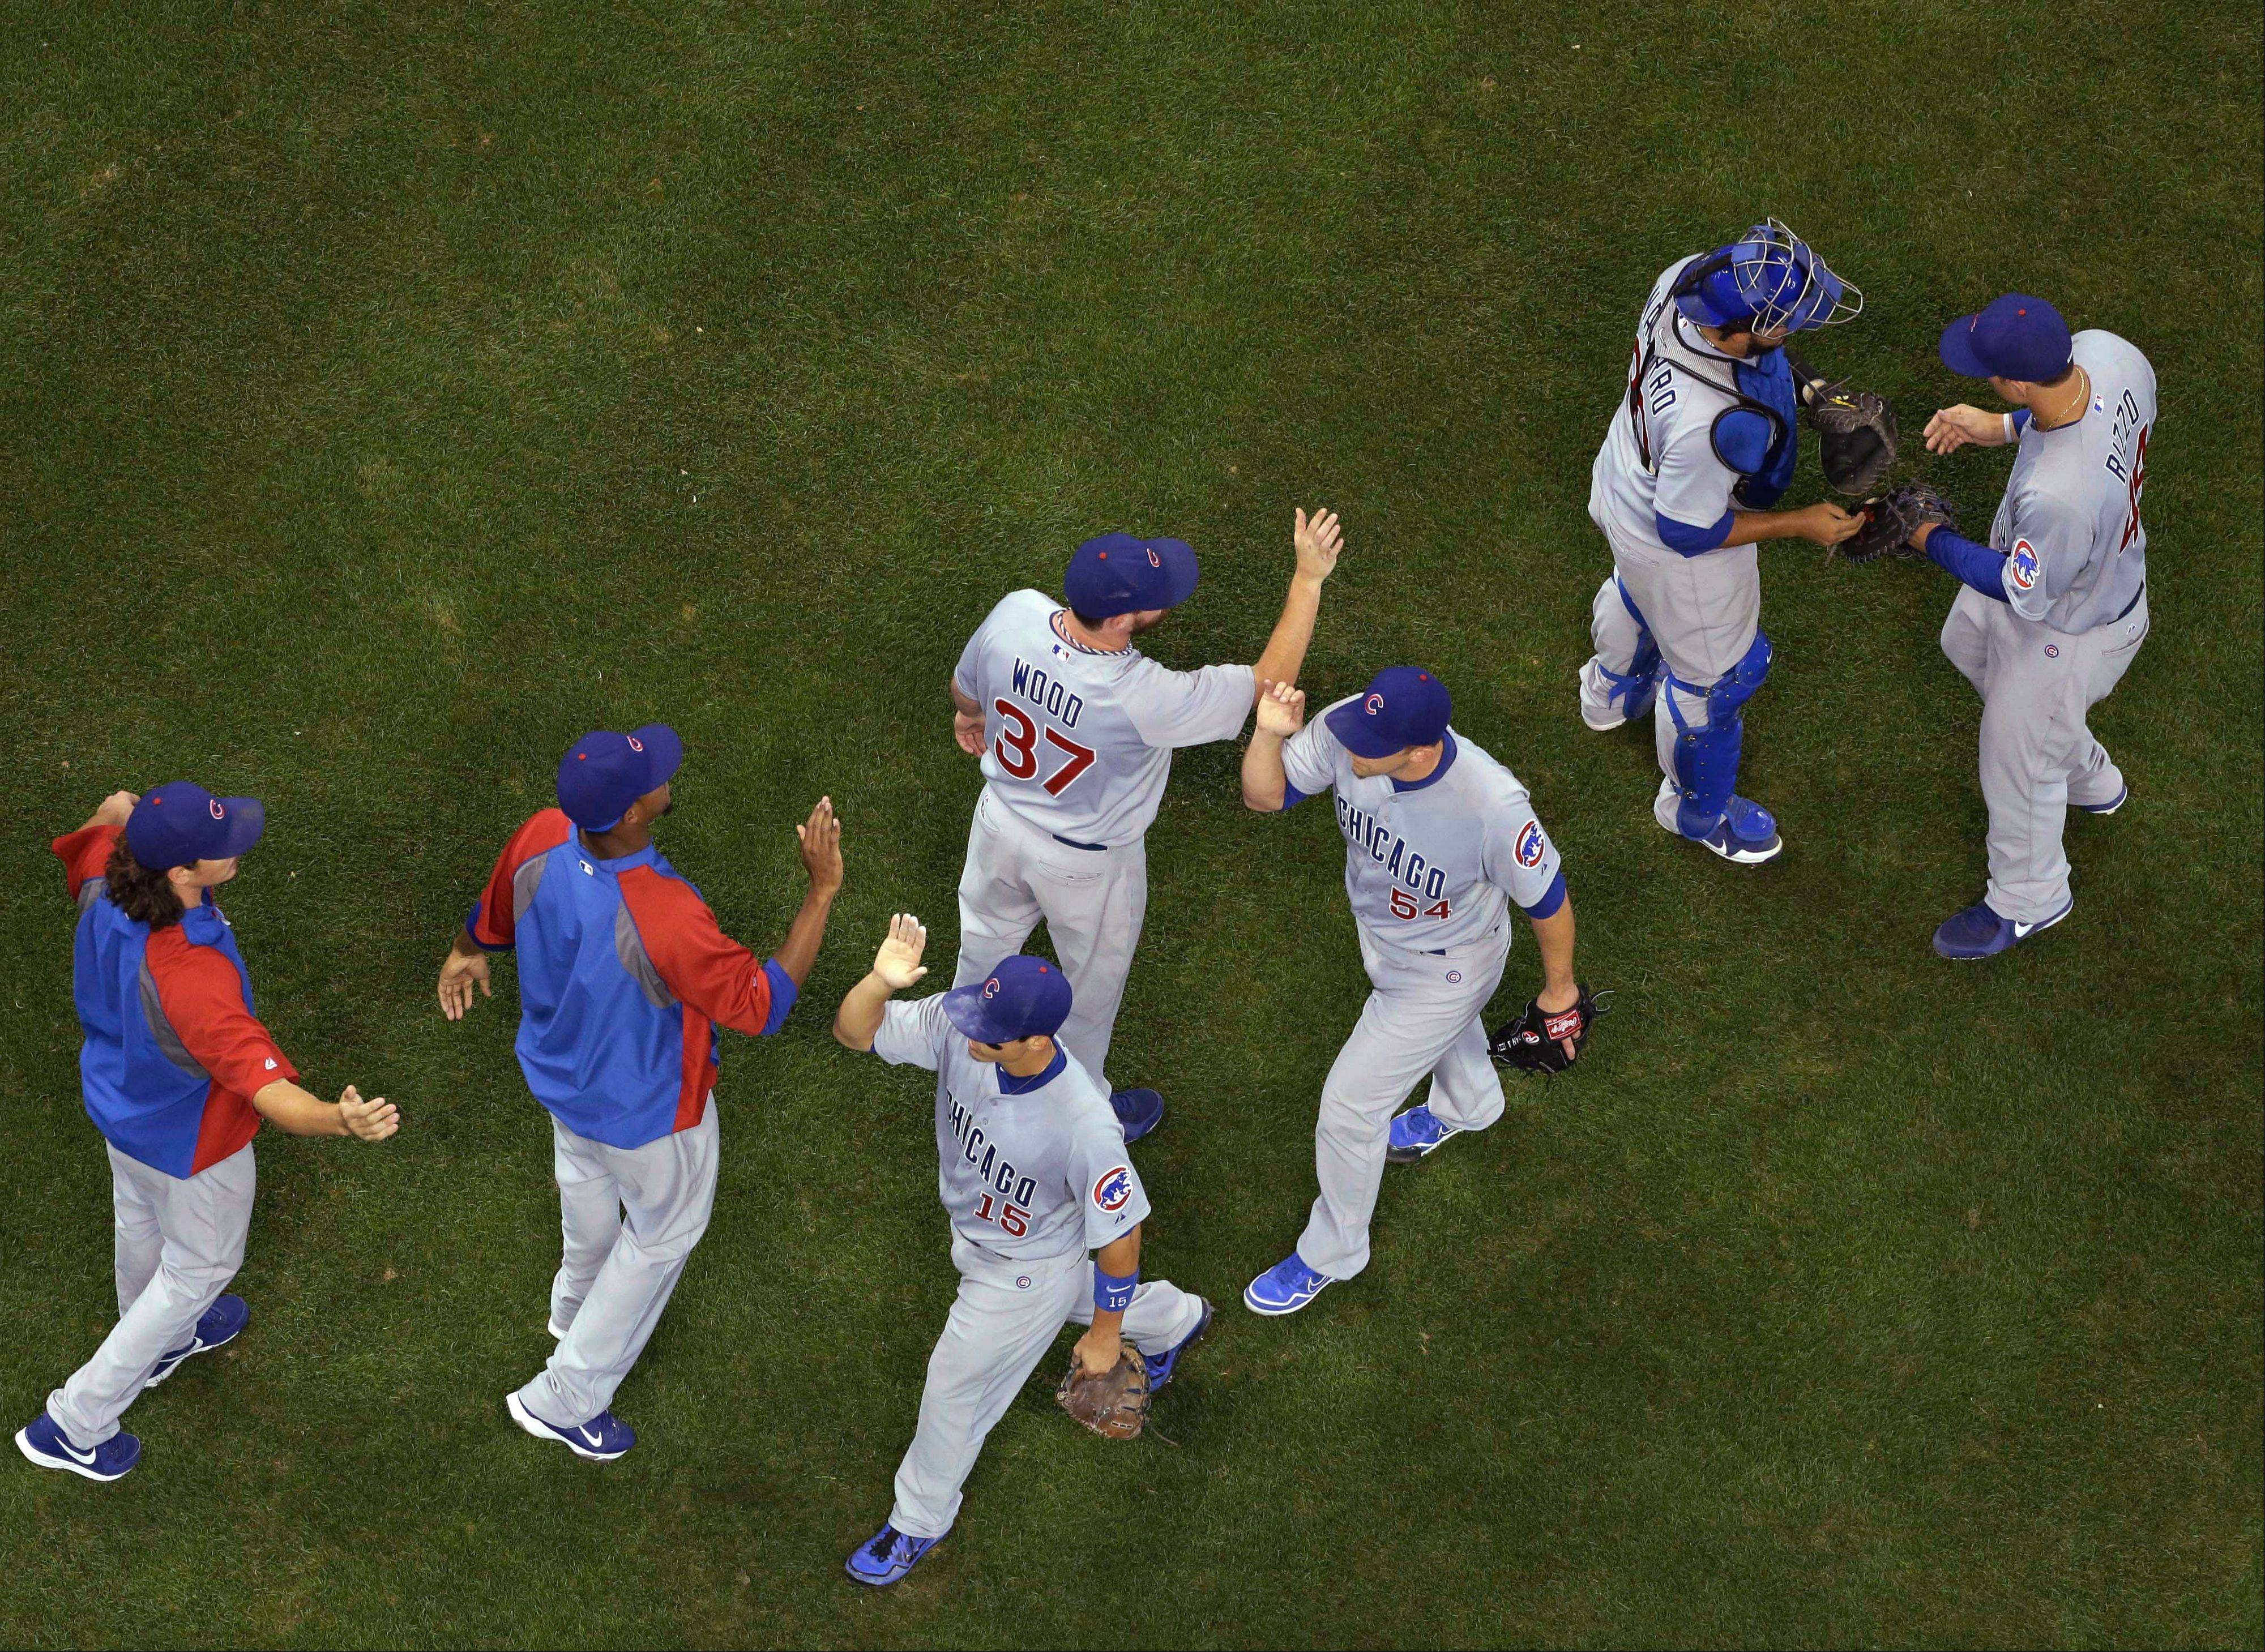 The Cubs celebrate their 7-2 win over Milwaukee Brewers in a baseball game Thursday, June 27, 2013, in Milwaukee.